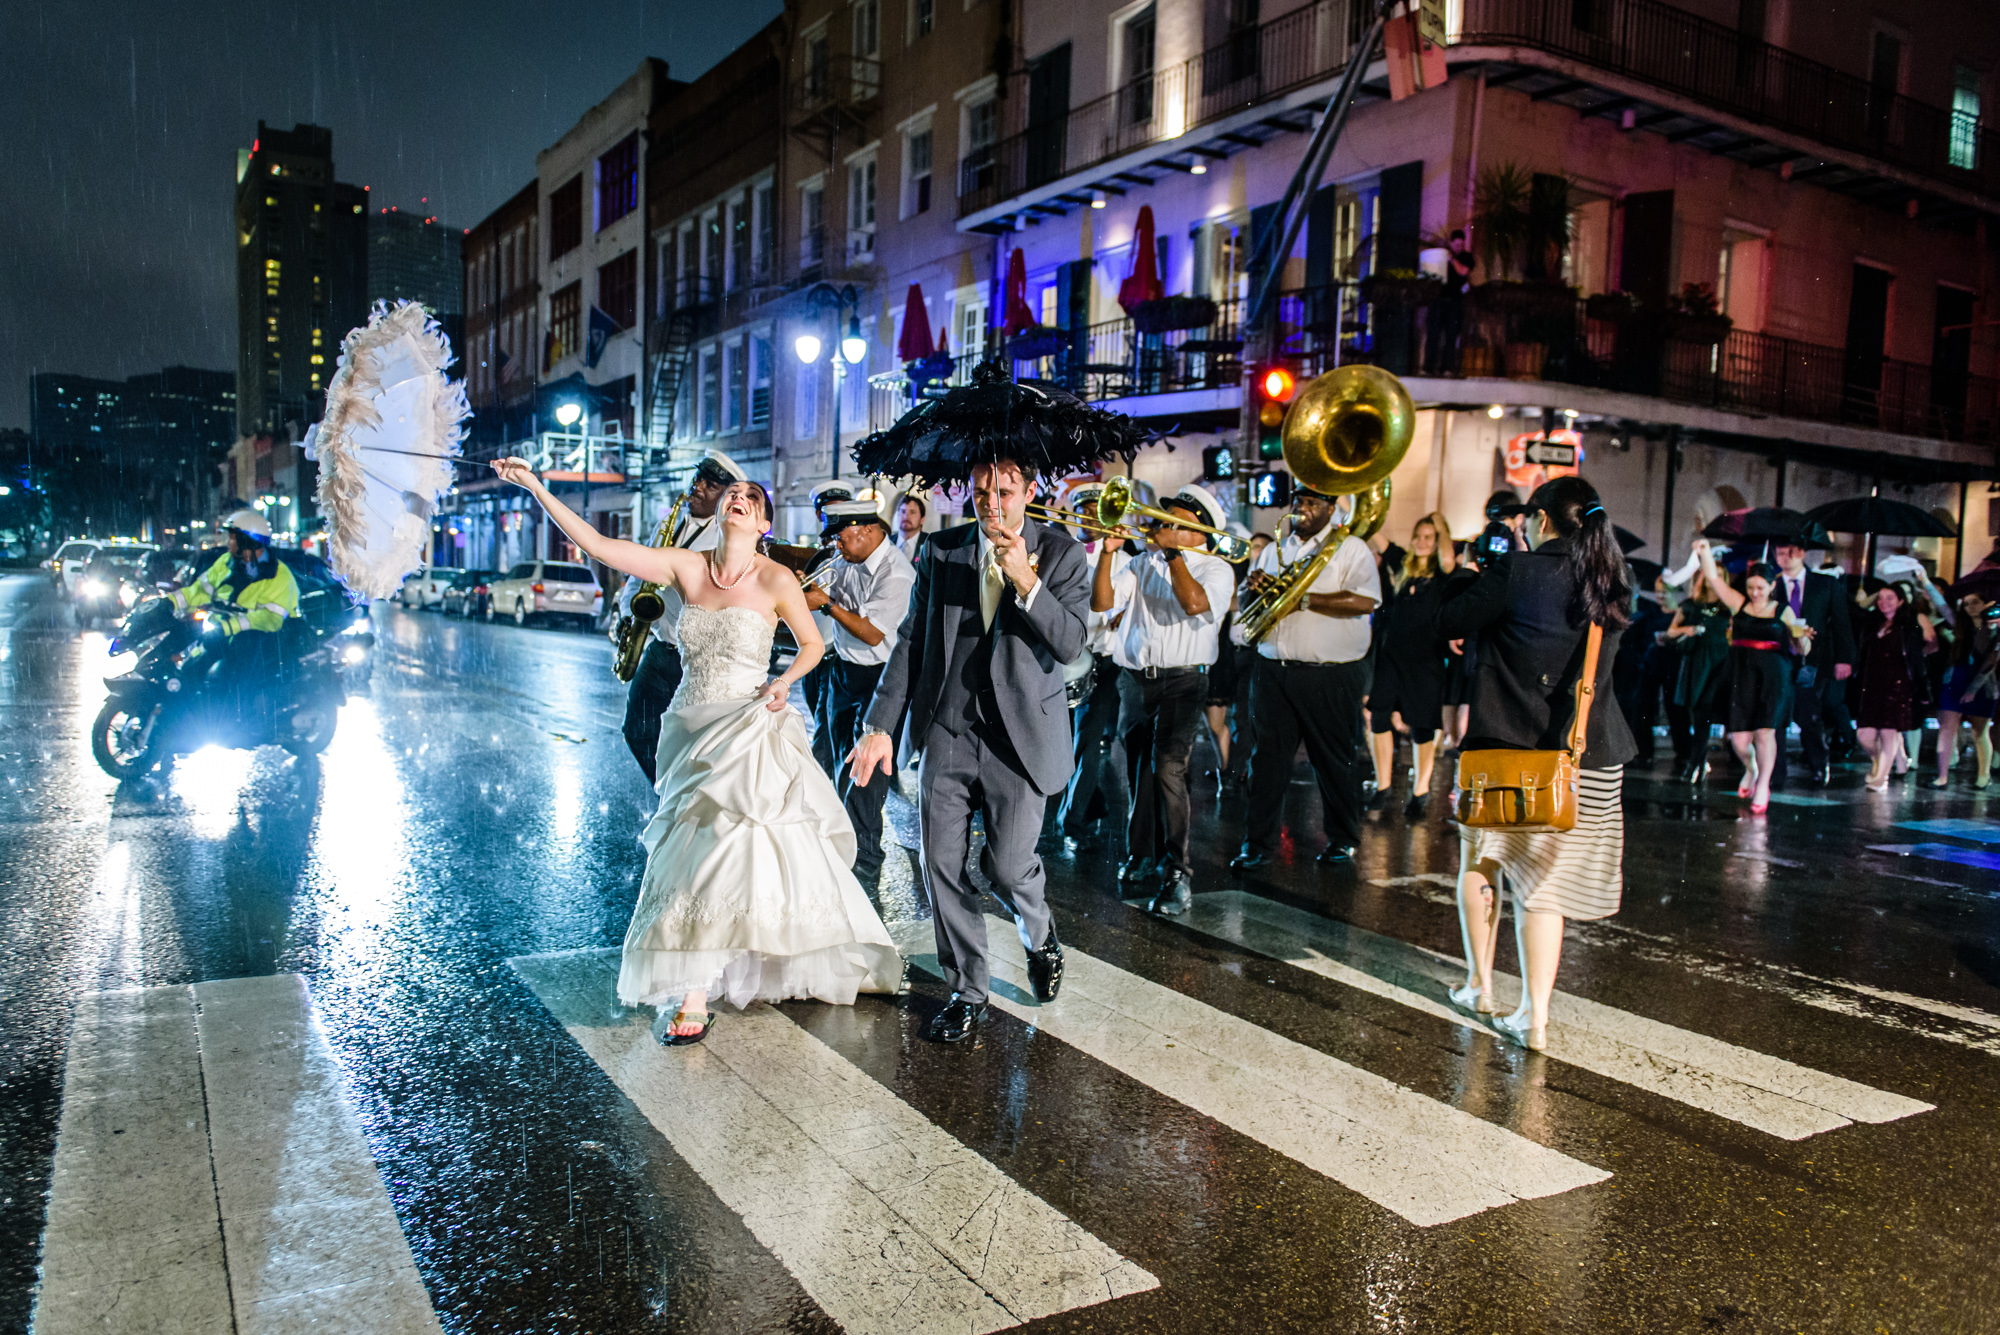 Not even rain stops a New Orleans wedding second line parade.